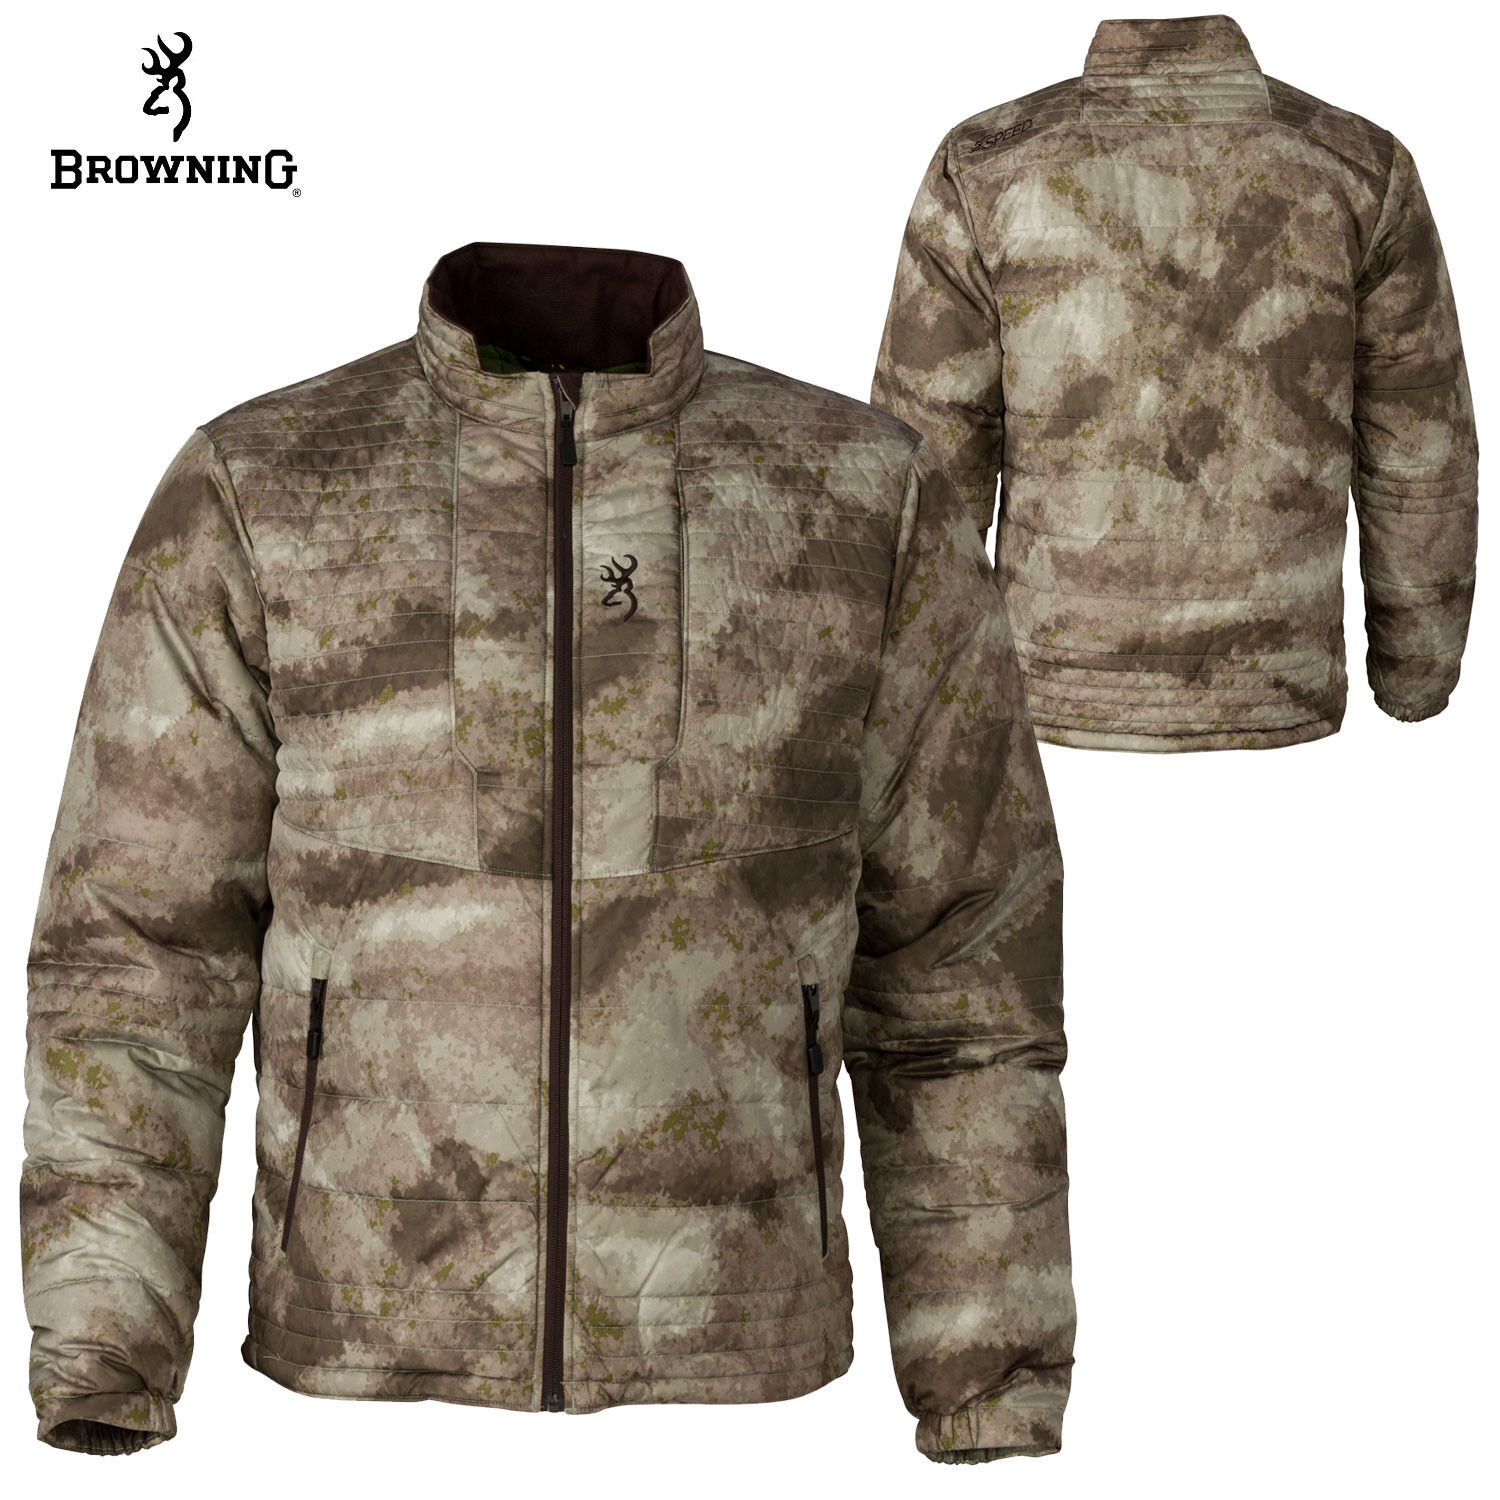 Browning Hell's Canyon Speed  Shrike Jkt (S)- ATACS AU  the newest